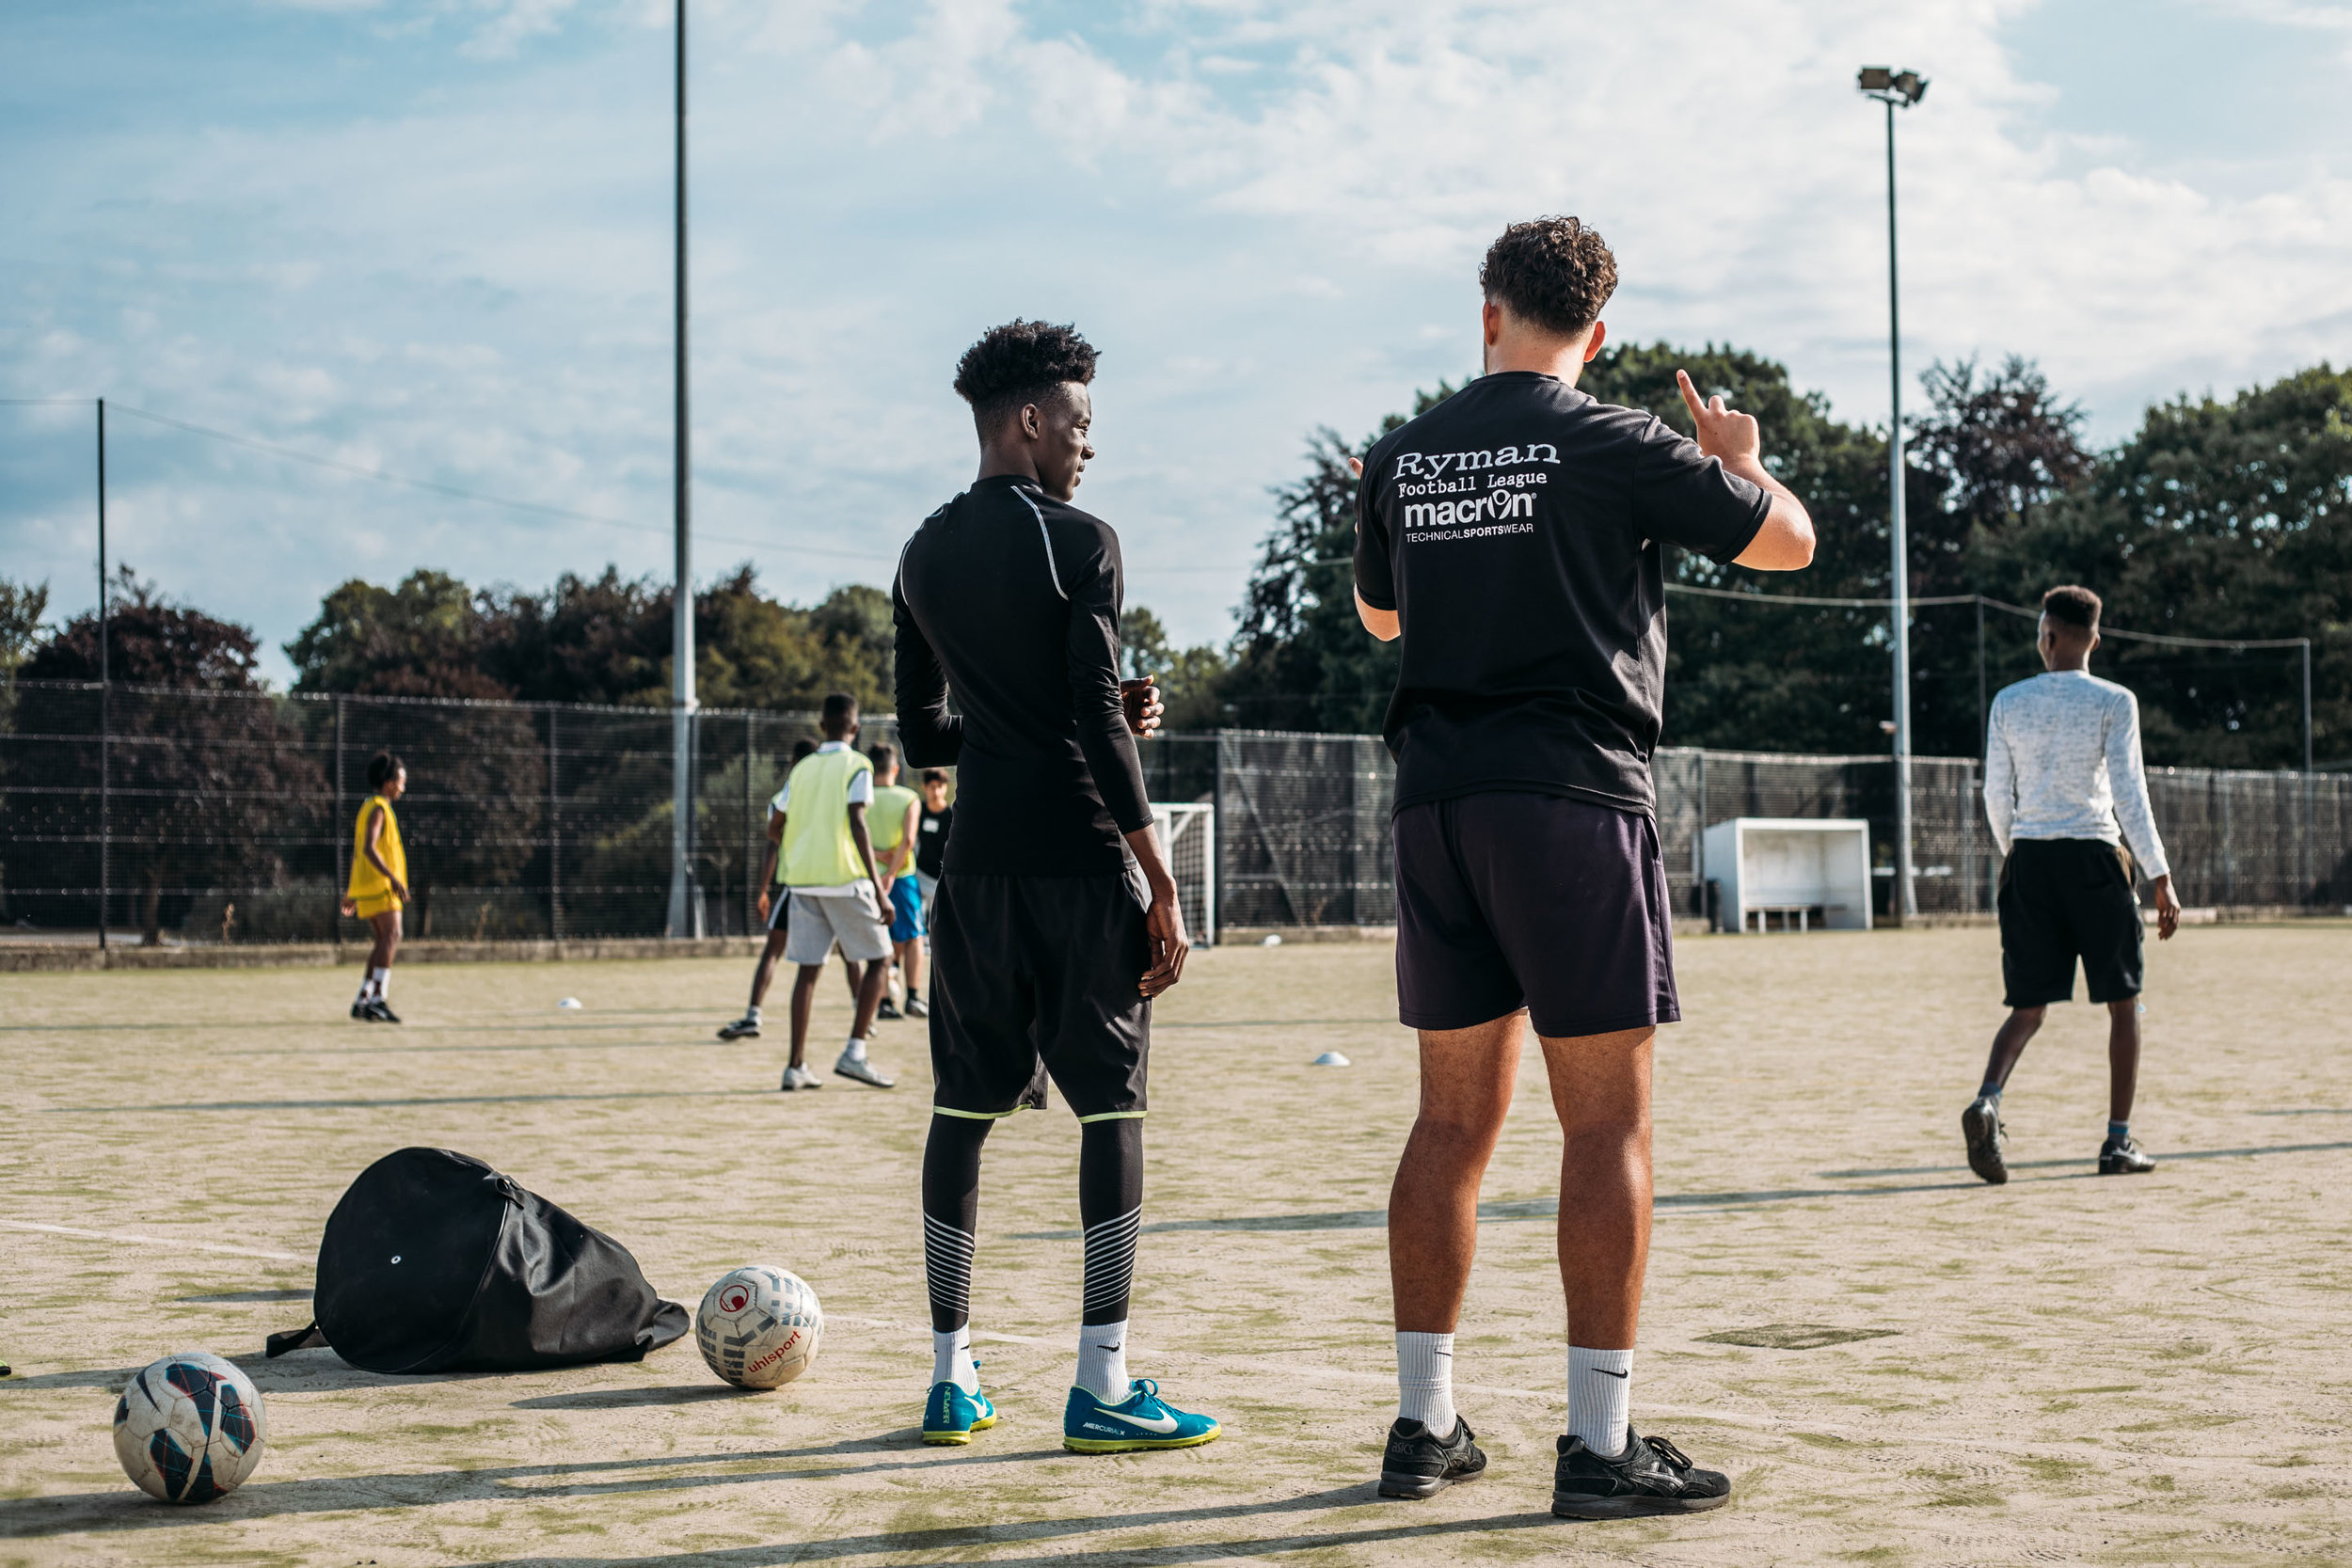 Volunteer coach Joss Hole talks offside with a Nations United FC player on Chichester University football pitch. Nations United FC is a football team made up entirely of refugees - set up earlier this year by volunteer group Sanctuary in Chichester. The team has players from around 8 nationalities and was started to help integrate young refugees in West Sussex into the community. 20th July 2018.